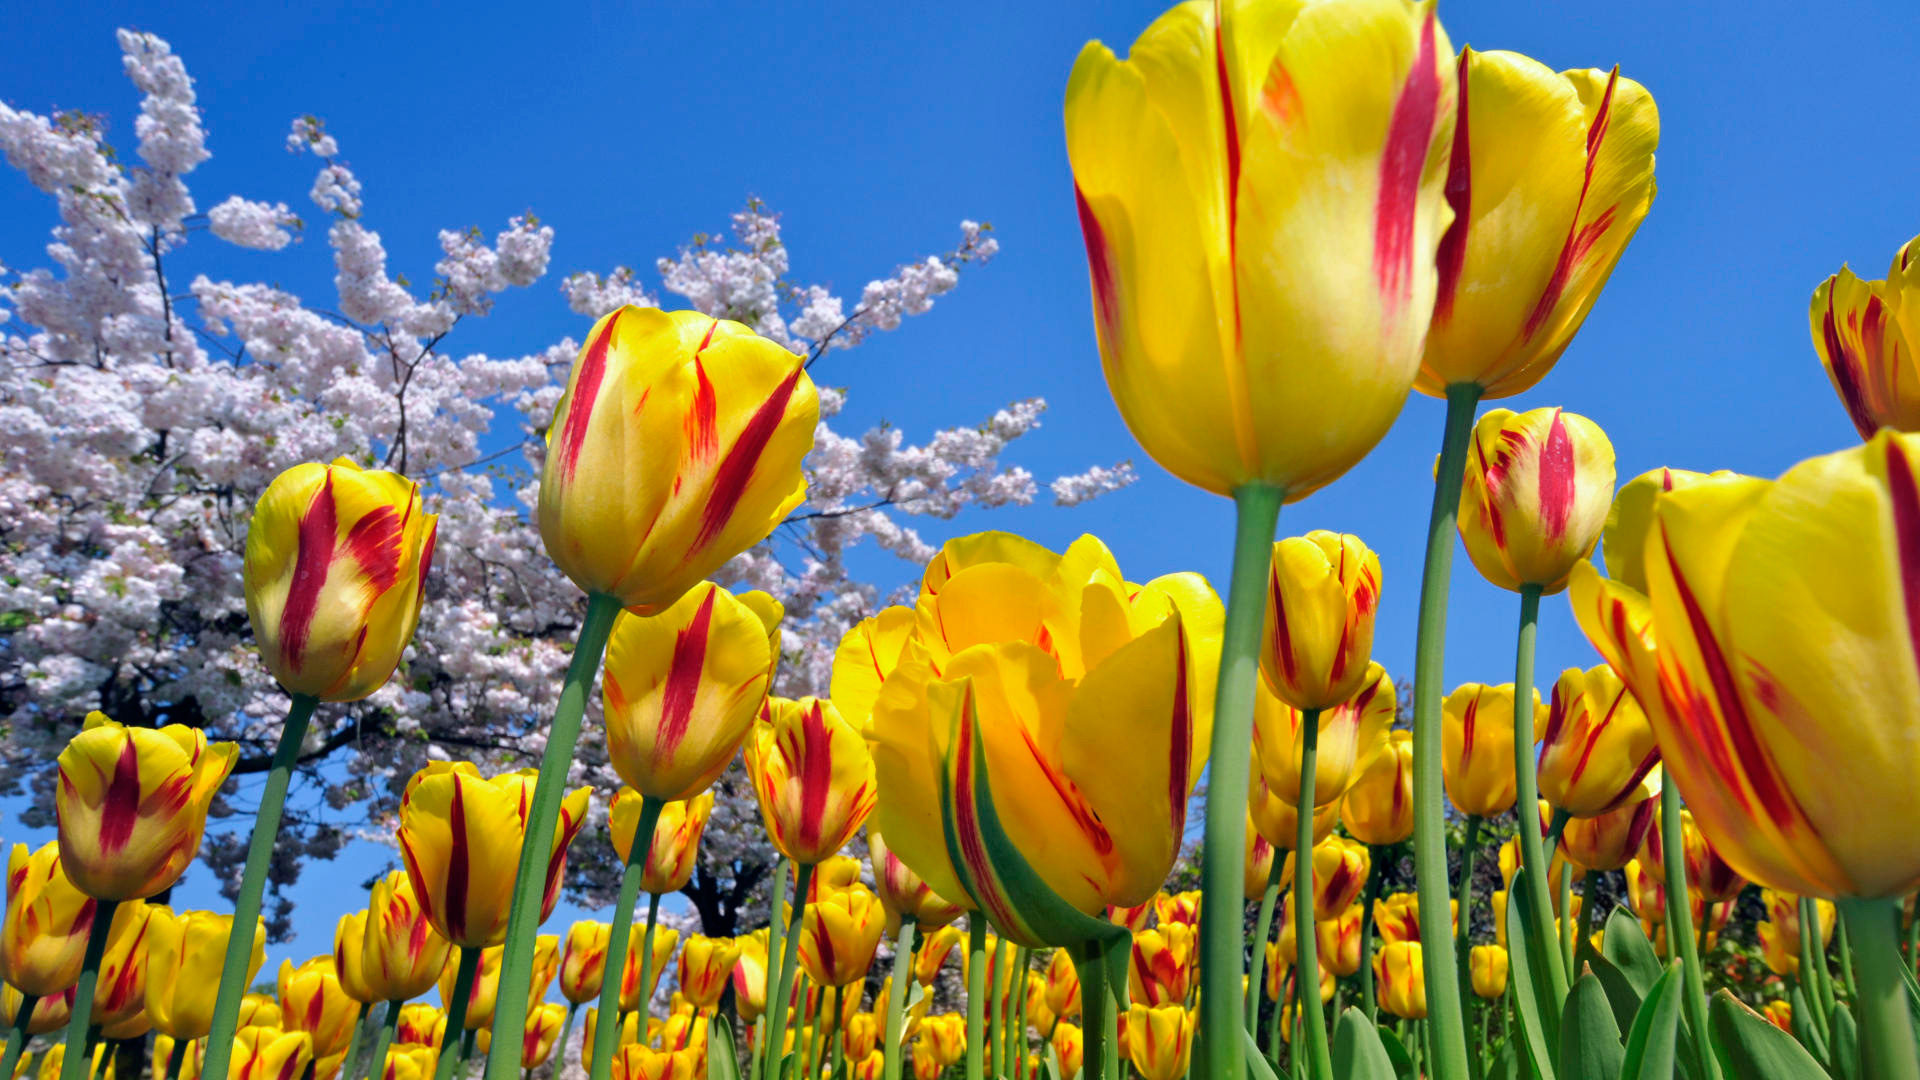 Send flowers, speculate on tulip prices with Bitcoin